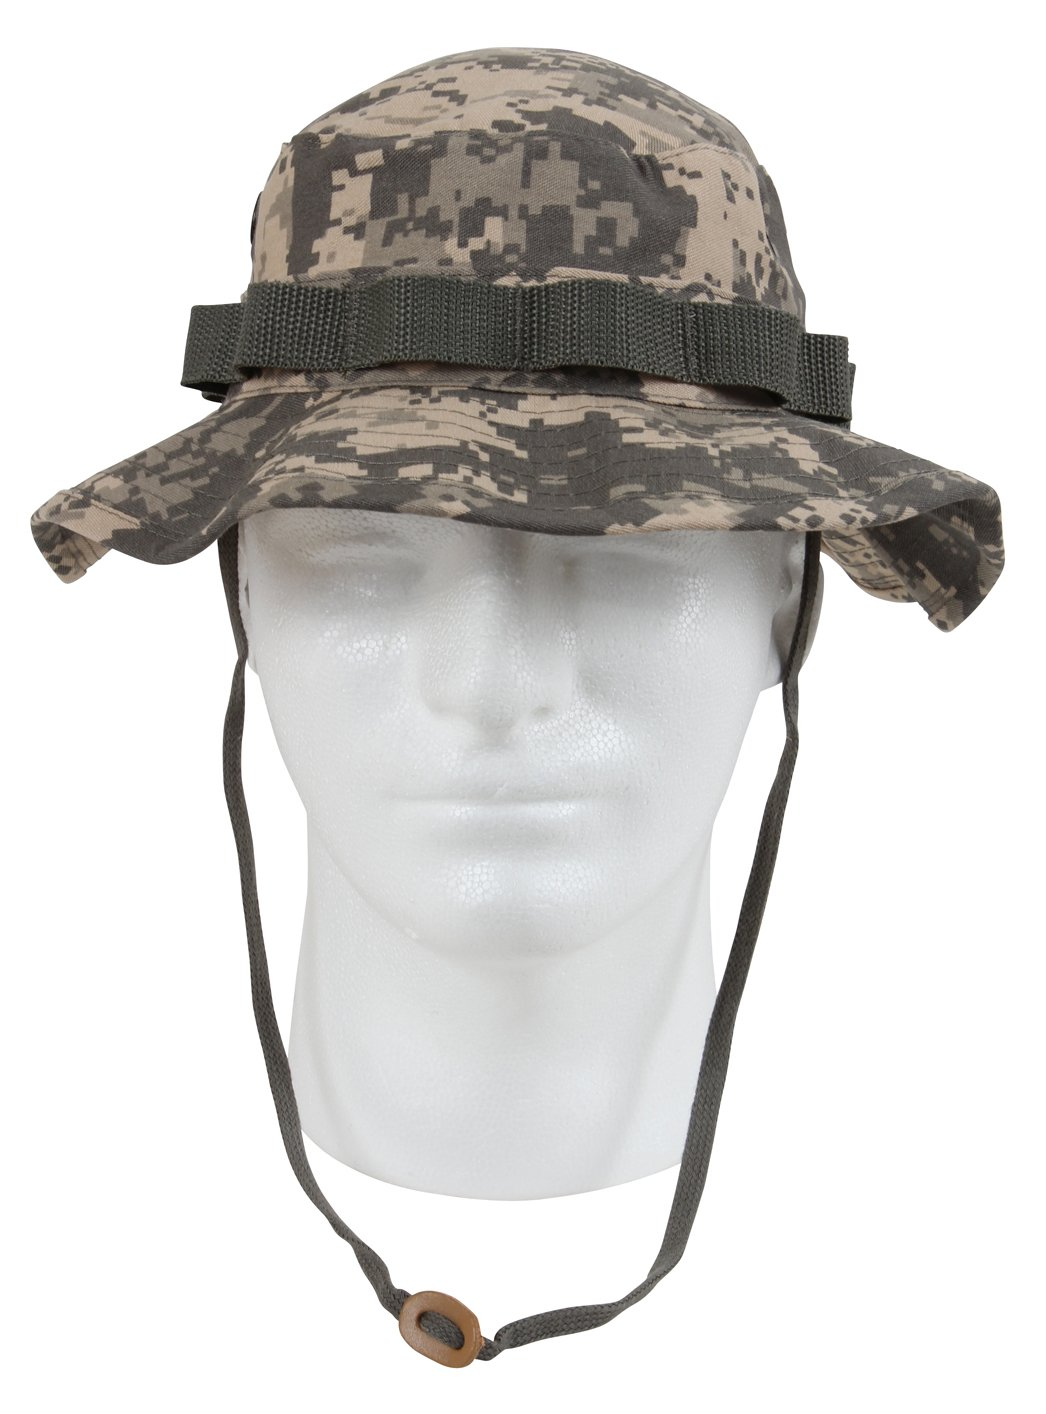 e4b8a335986 How To Find Best Bonnie Hat For Outdoor Activities 2019